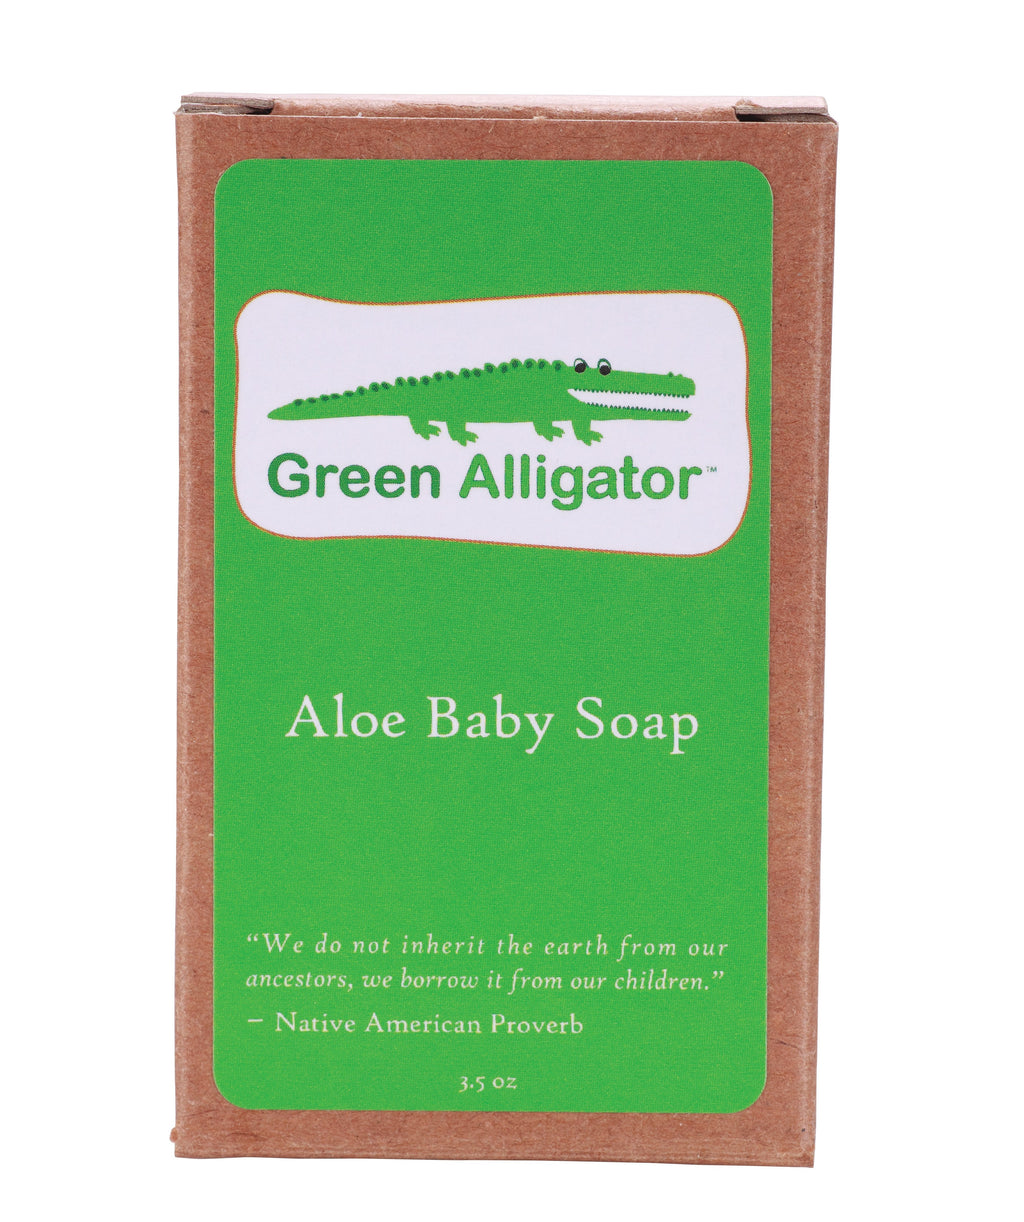 Green Alligator Aloe Baby Soap- Celadon Road- www.celadonroad.com